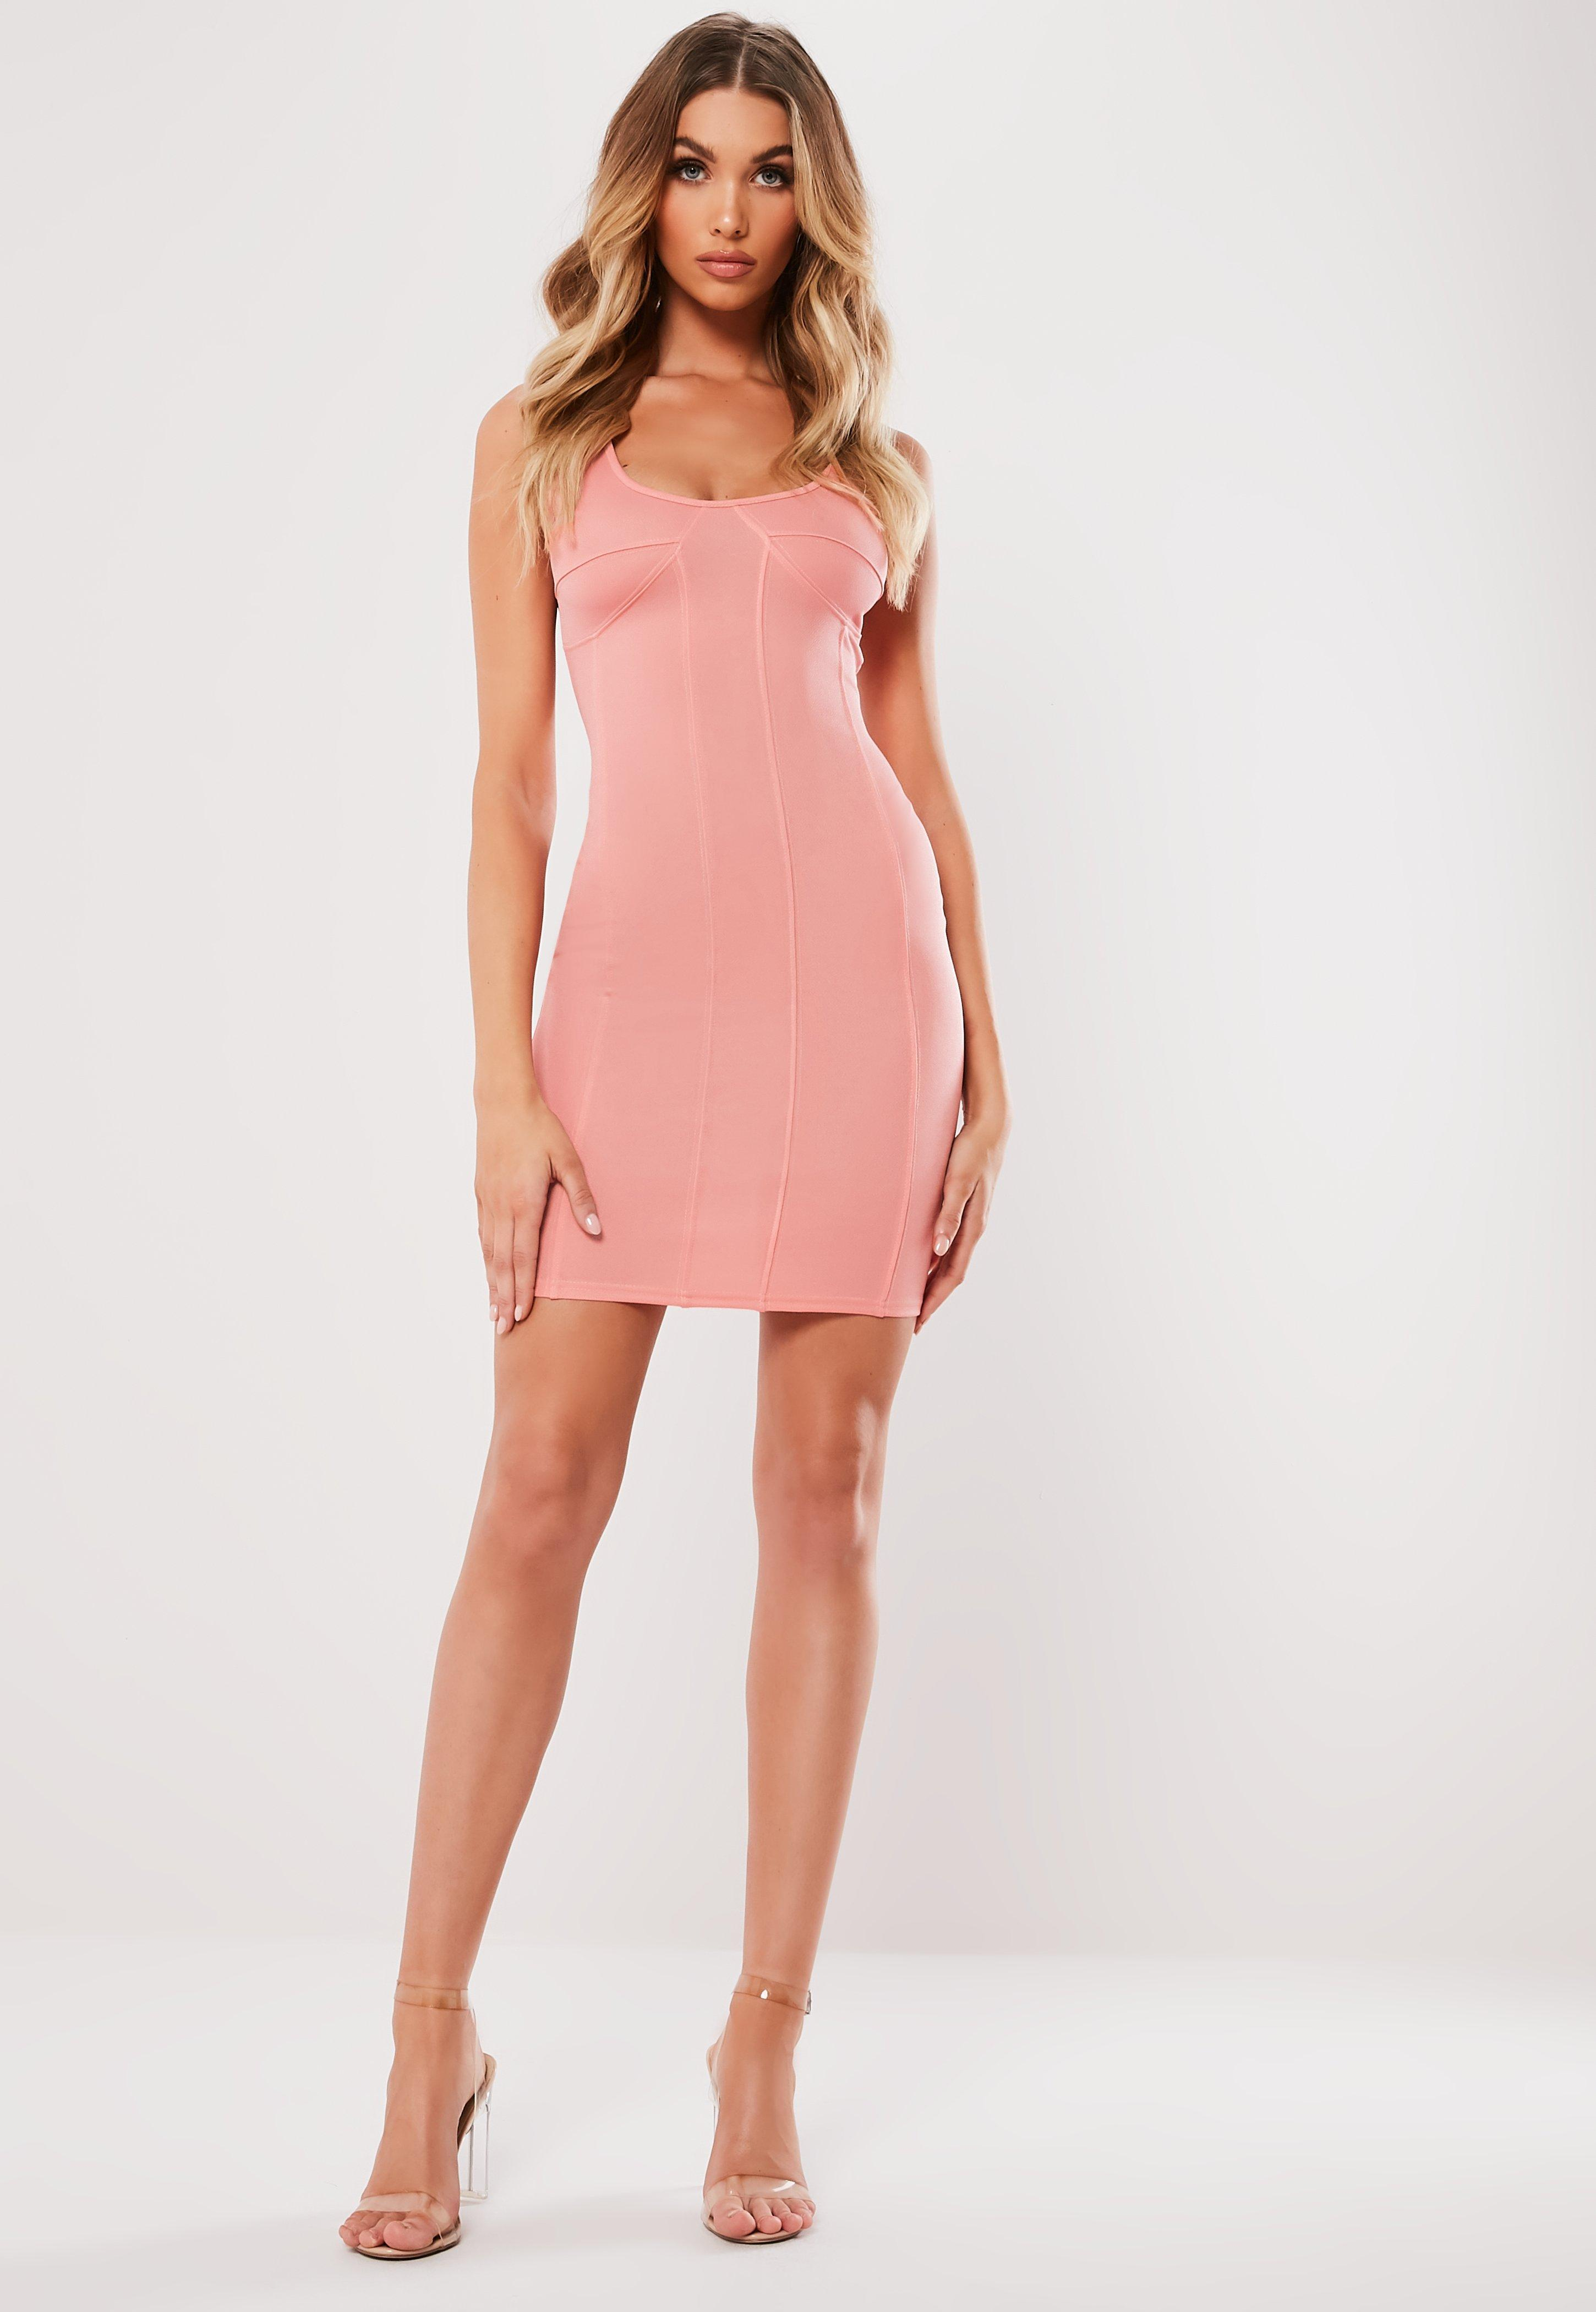 Lyst - Missguided Pink Sleeveless Bustcup Mini Dress in Pink 419002b0e